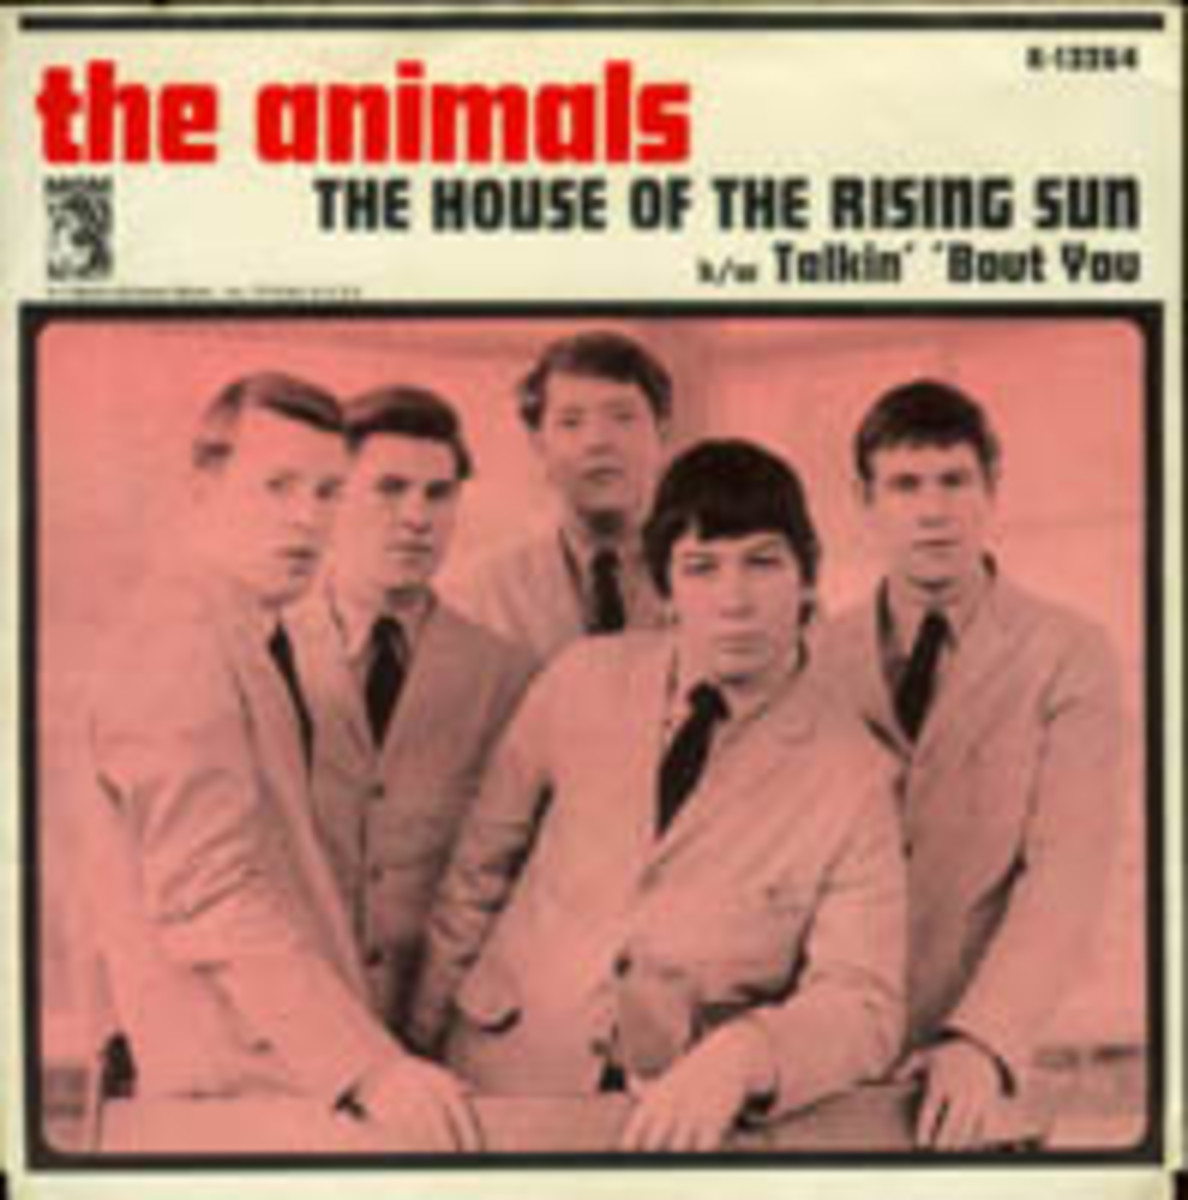 The Animals The House of The Rising Sun picture sleeve